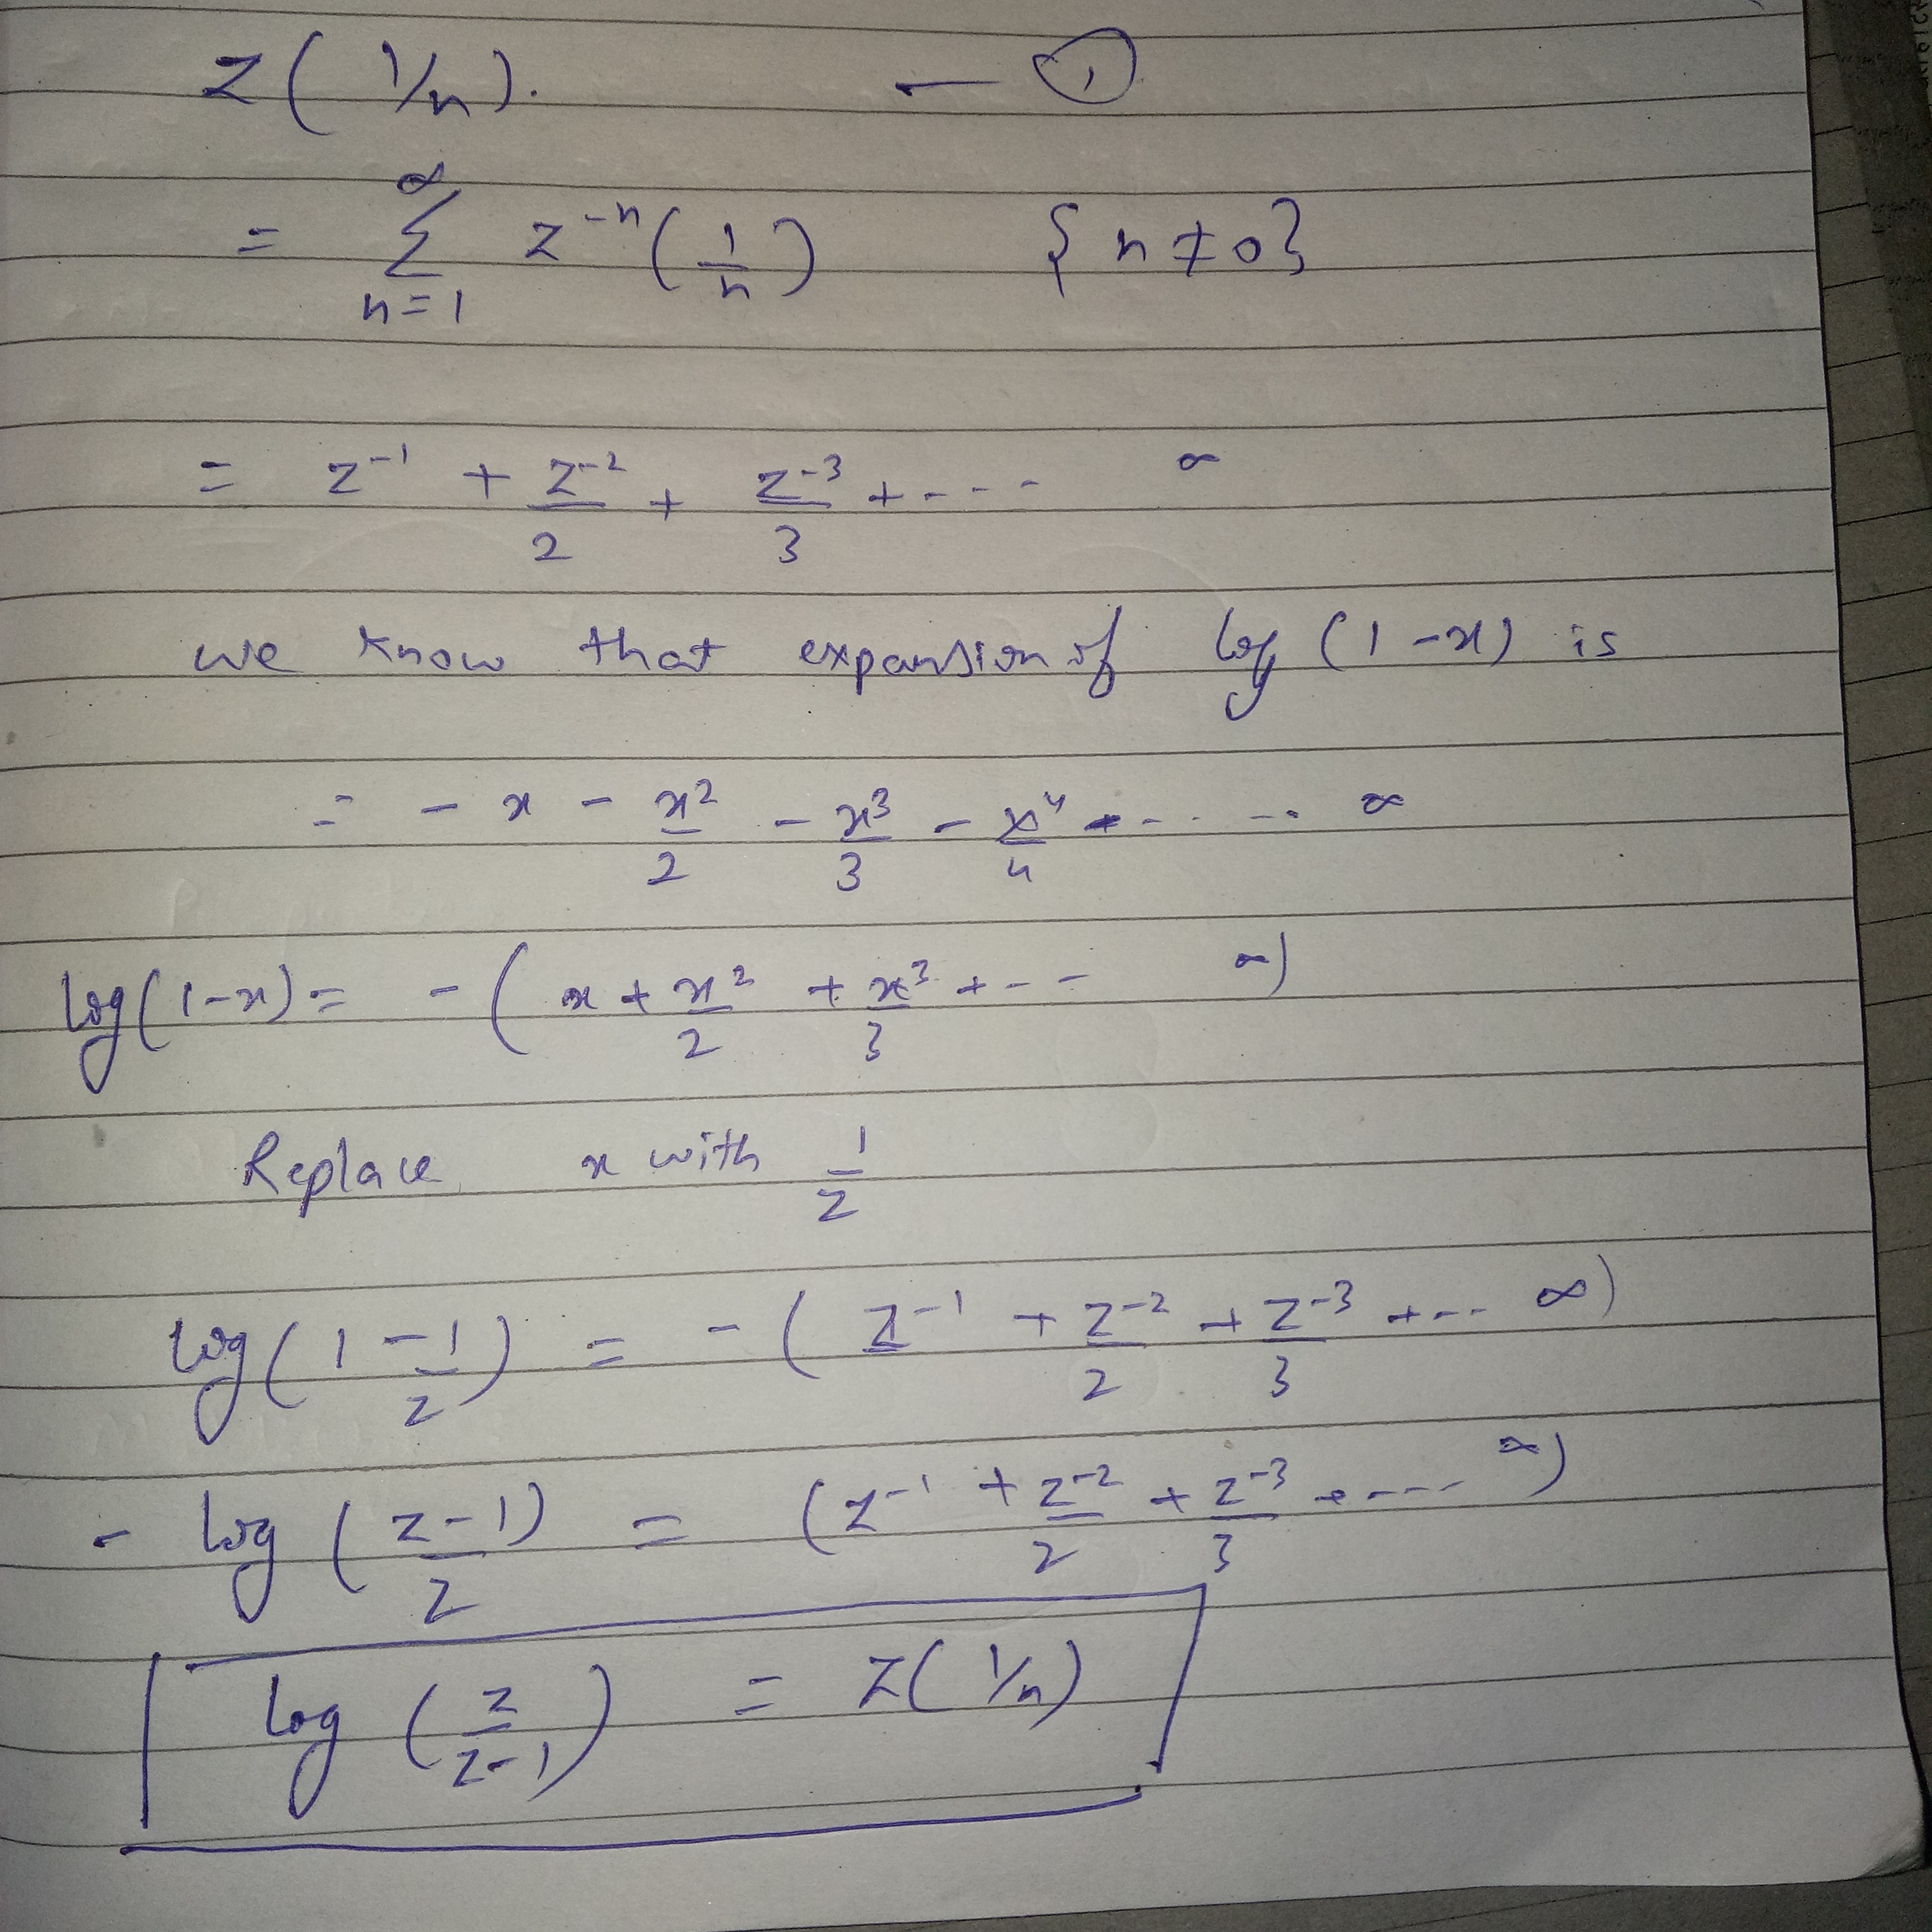 What is the z transform of (1/n)? - Quora